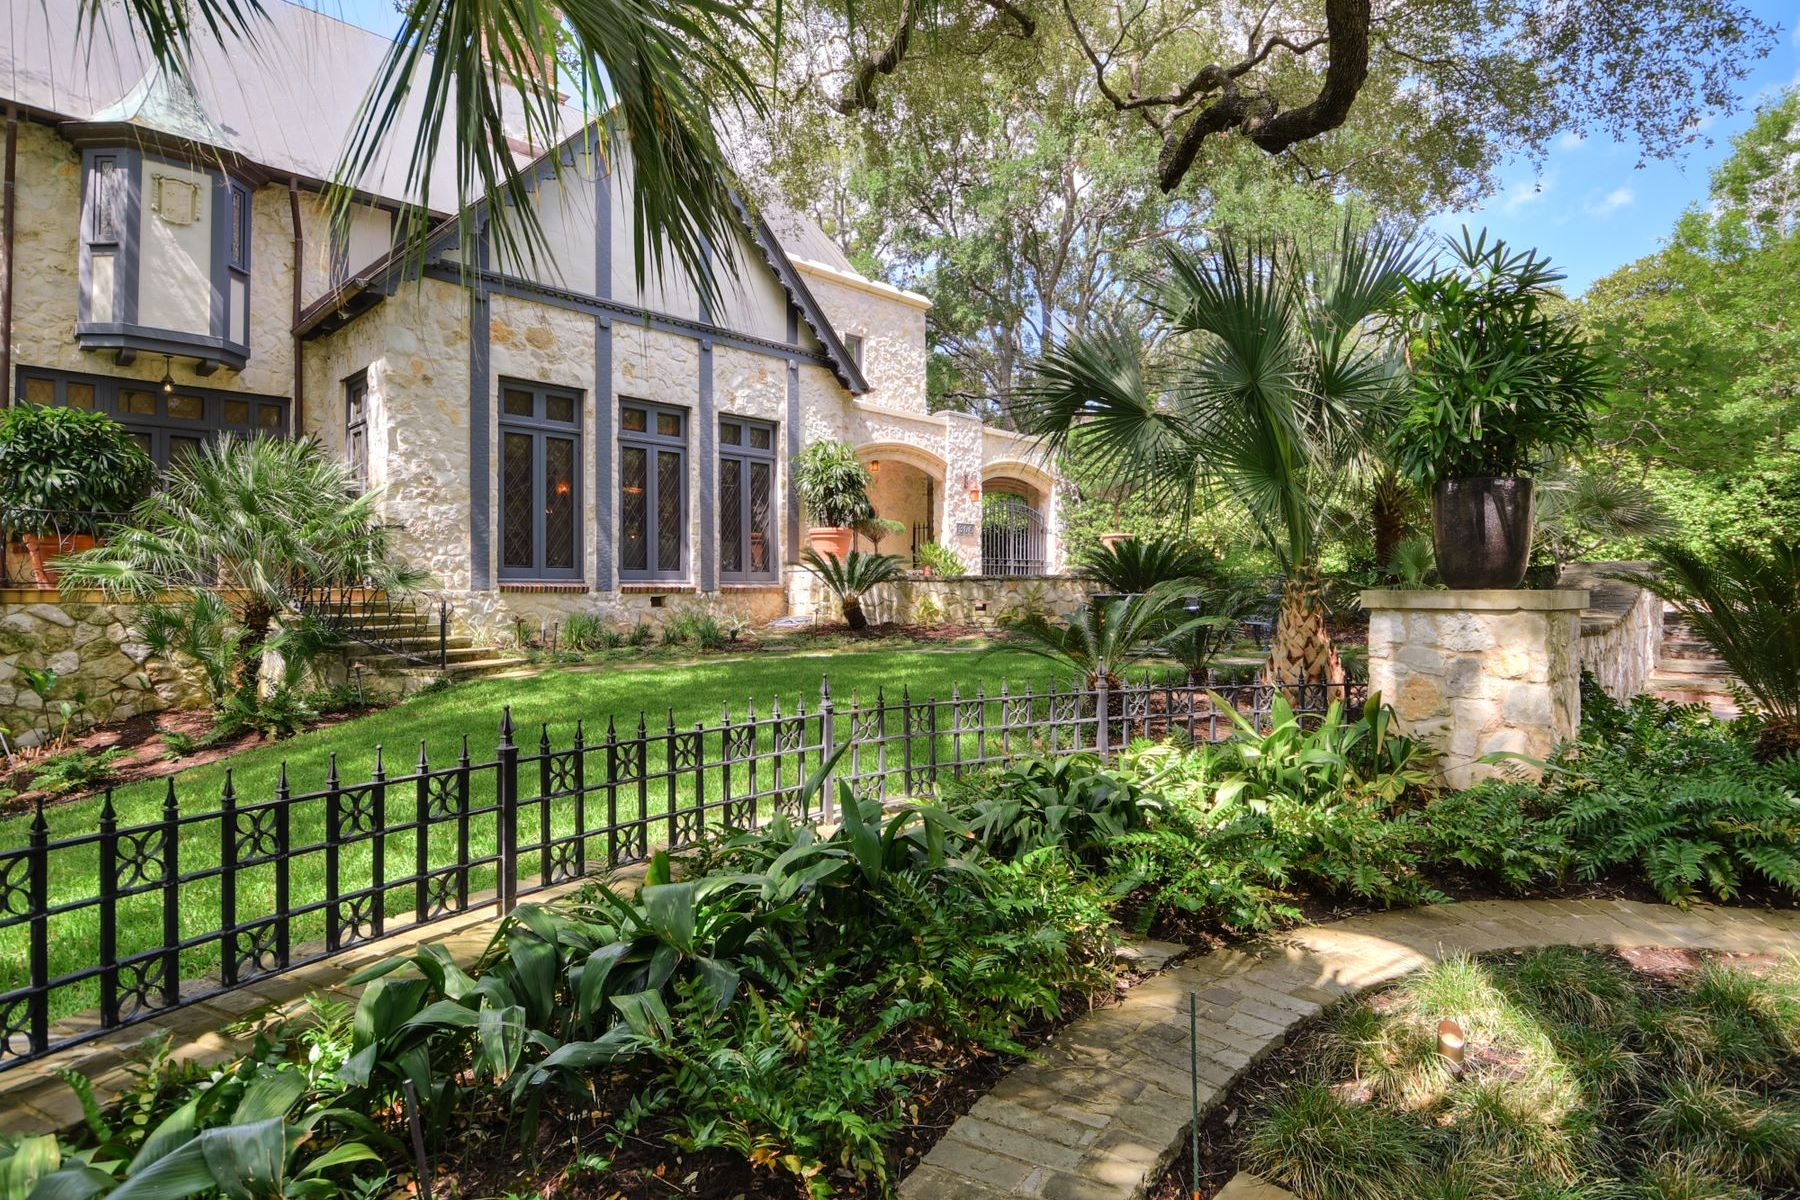 Single Family Homes for Sale at Upper Olmos Park Masterpiece which Captures a Moment in Time 306 East Hermosa Drive, Olmos Park, Texas 78212 United States